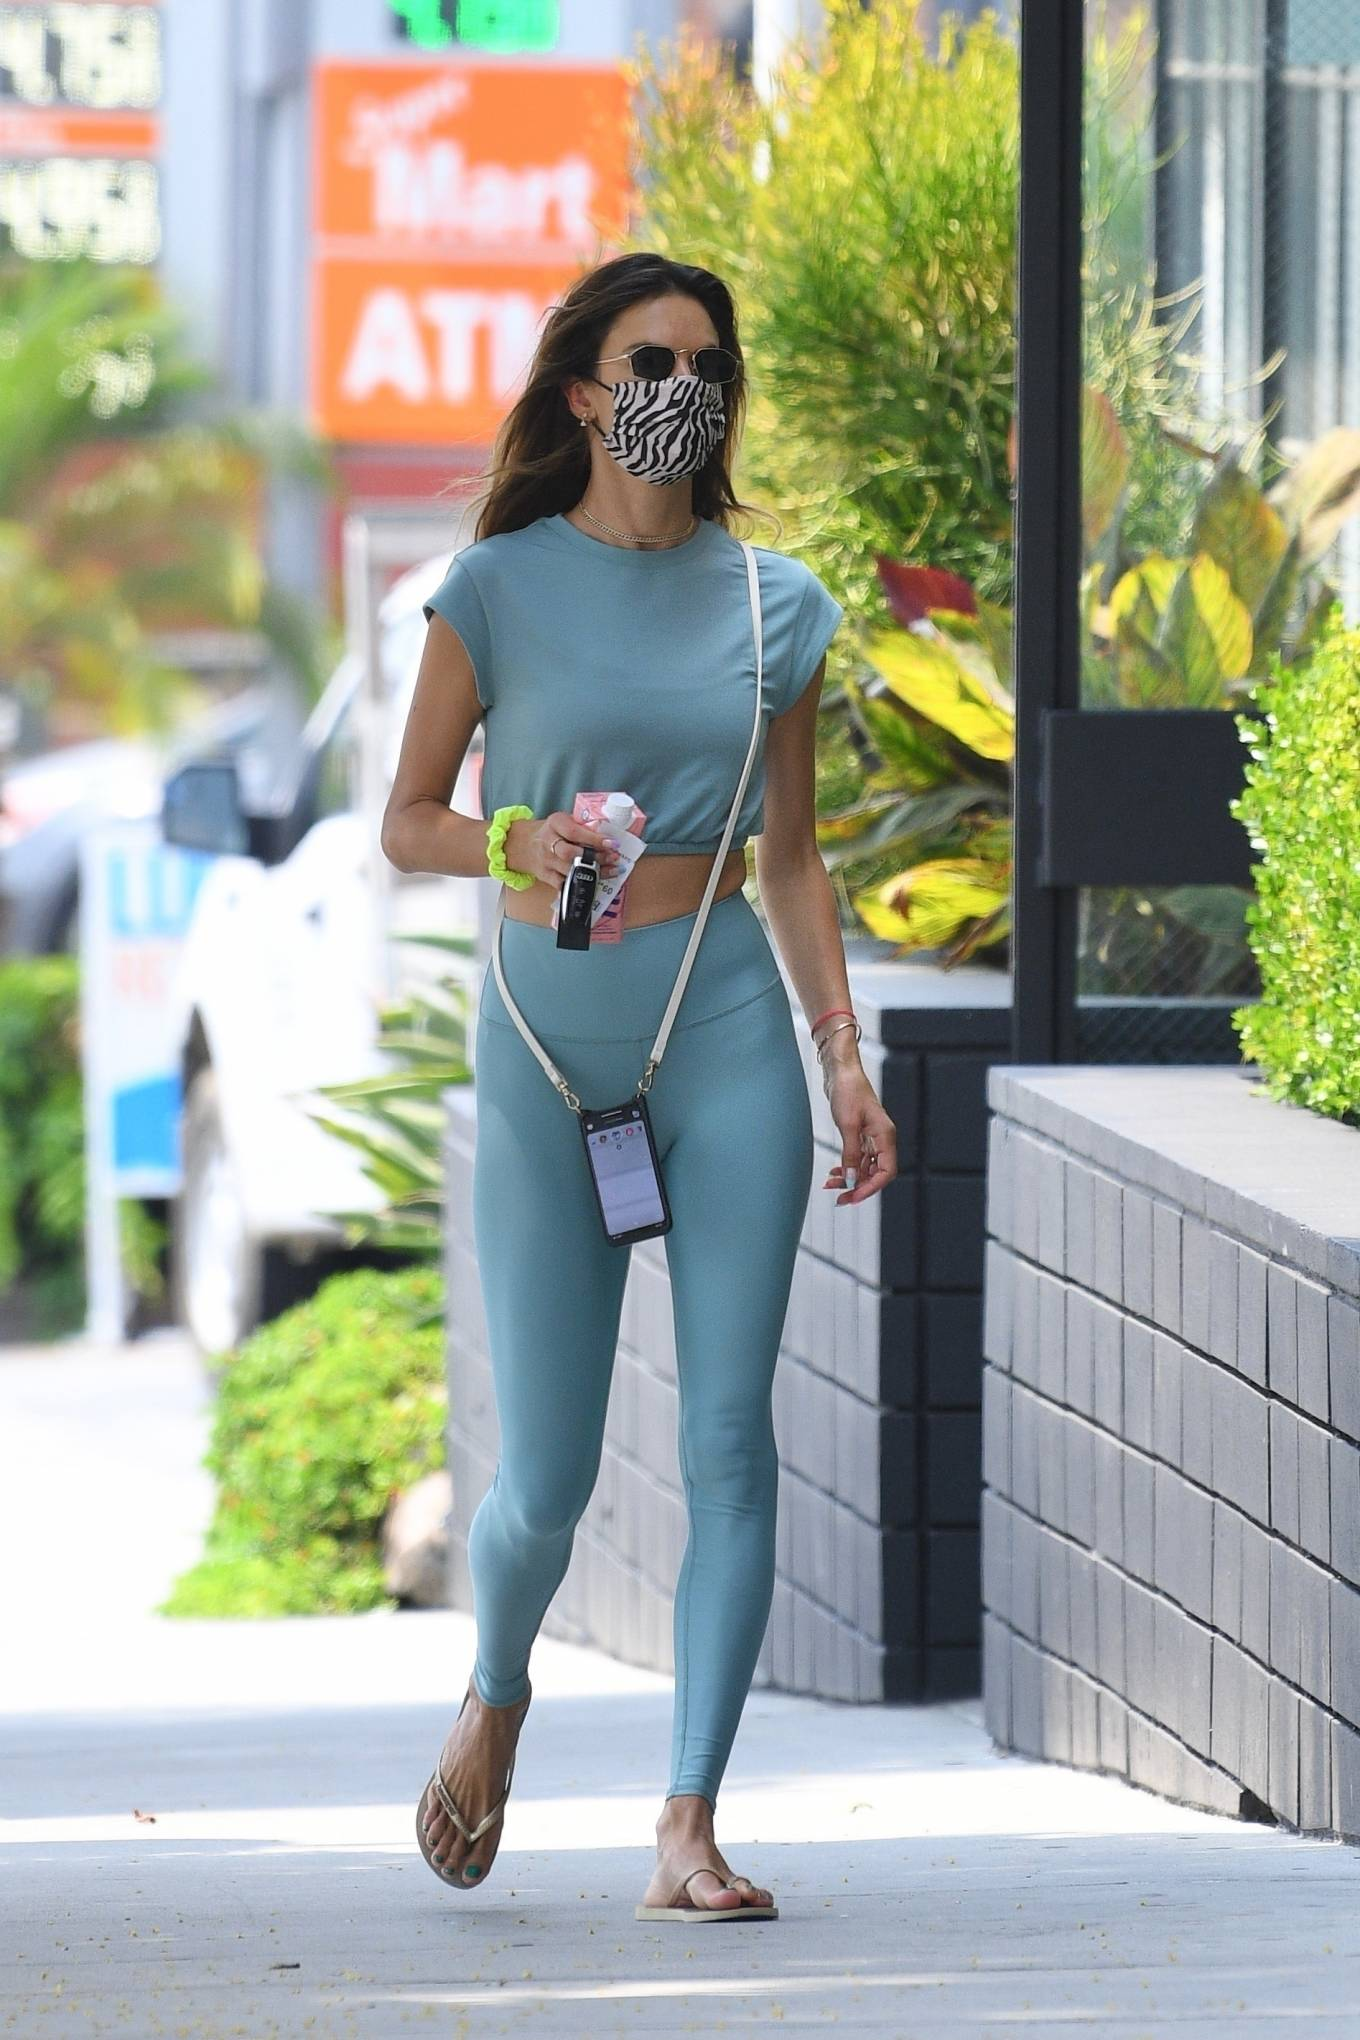 Alessandra Ambrosio wearing a relaxed fit bi color top with a cotton material, cap sleeves, a high neck and elastic hem